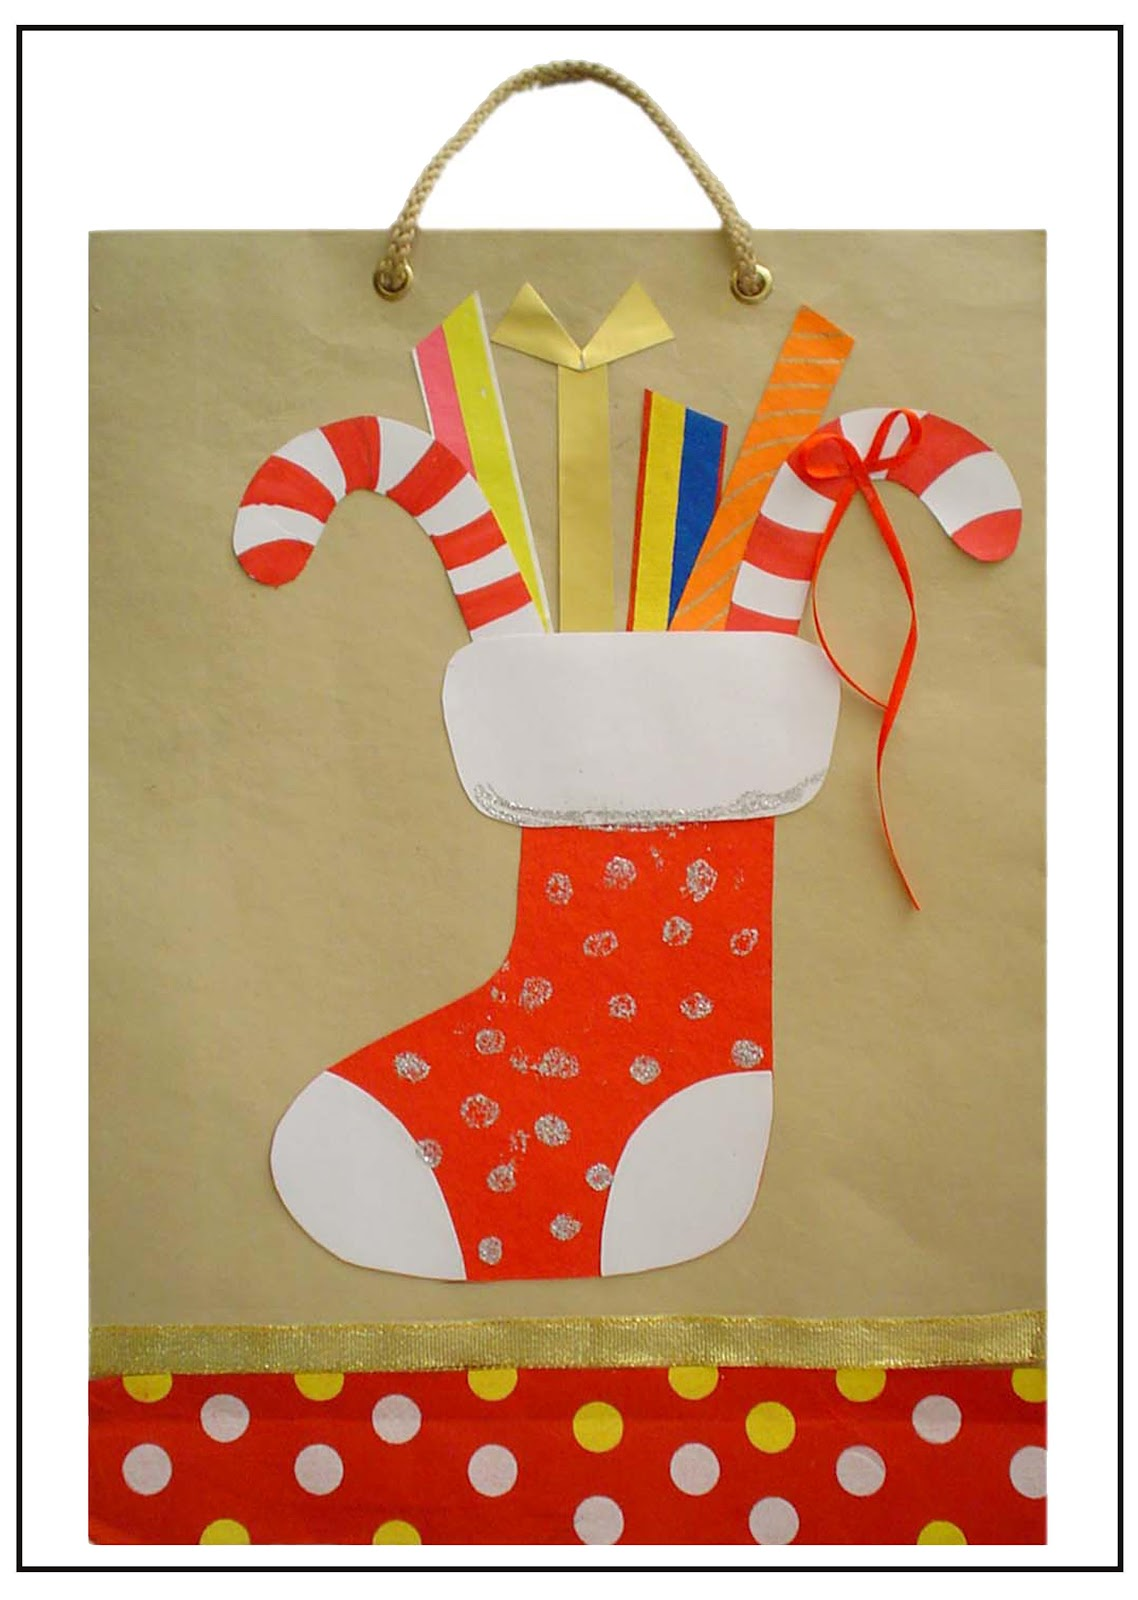 Fantastic Quot Do It Yourself Quot Craft Kits By The Jaipur Craft